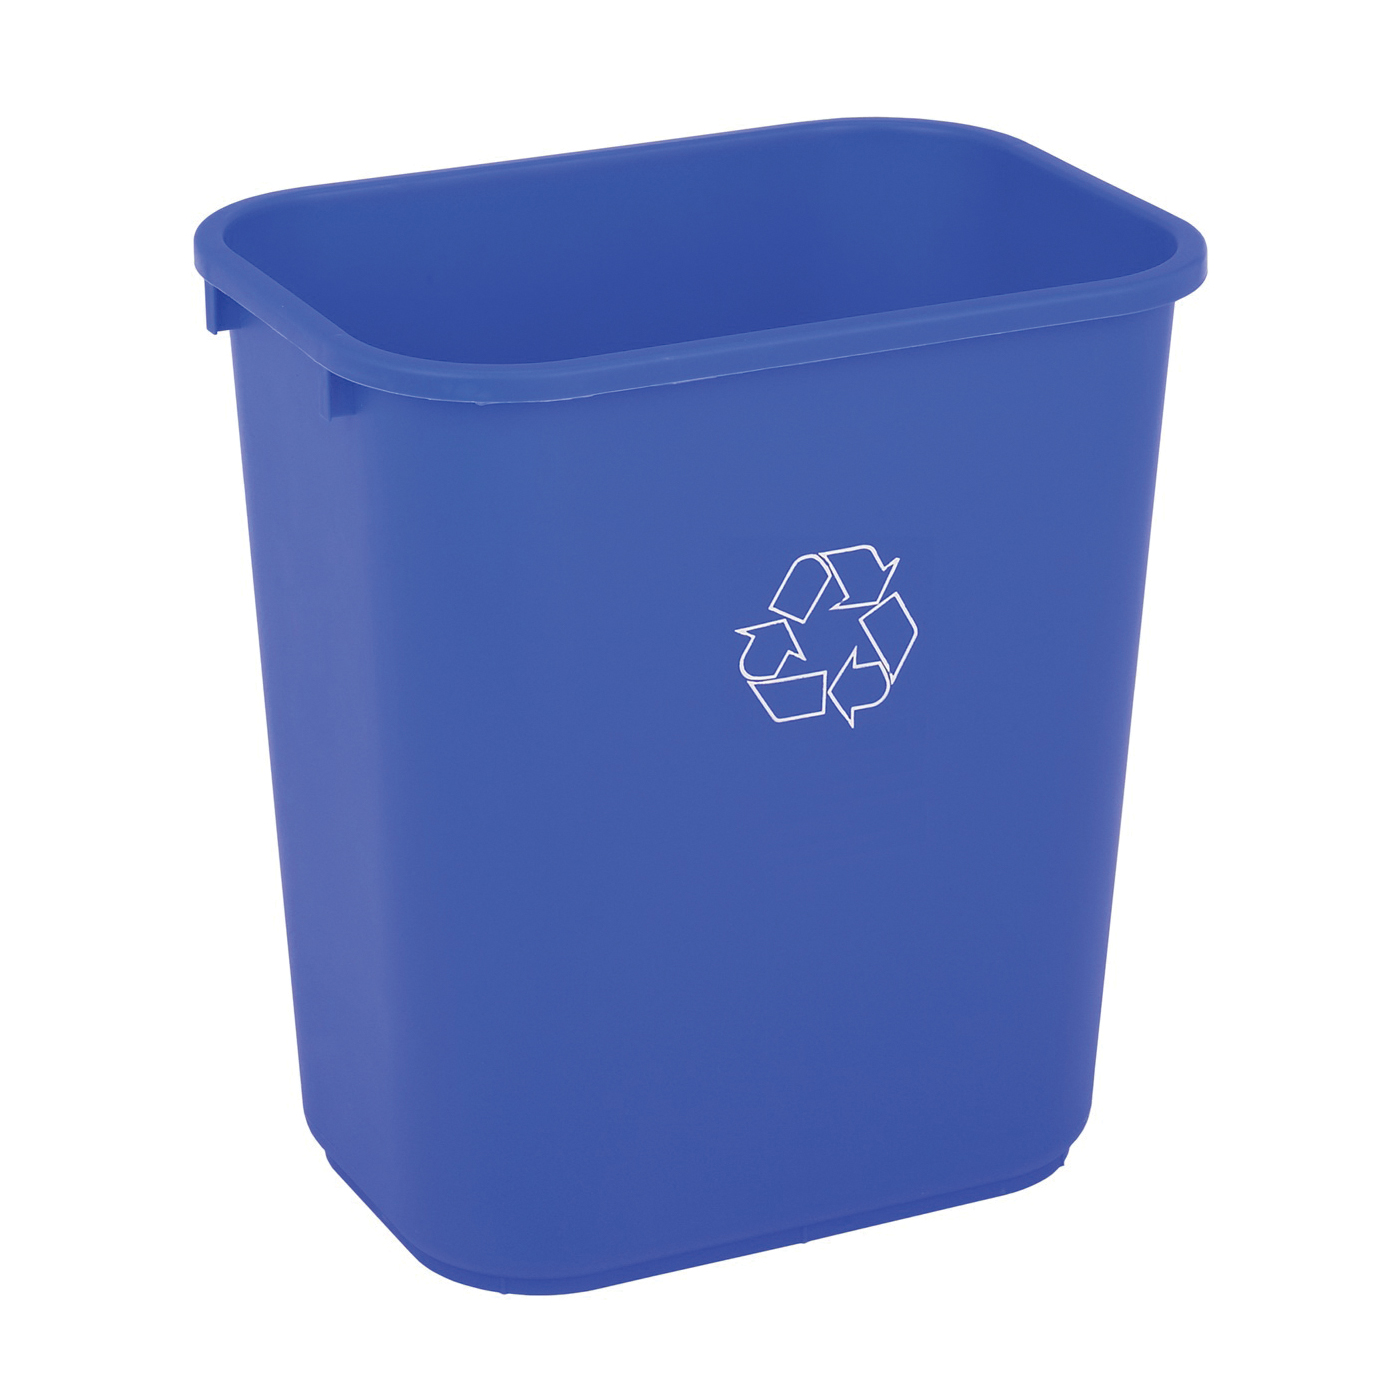 Picture of CONTINENTAL COMMERCIAL 2818-1 Recycling Waste Basket, 28.125 qt Capacity, Plastic, Blue